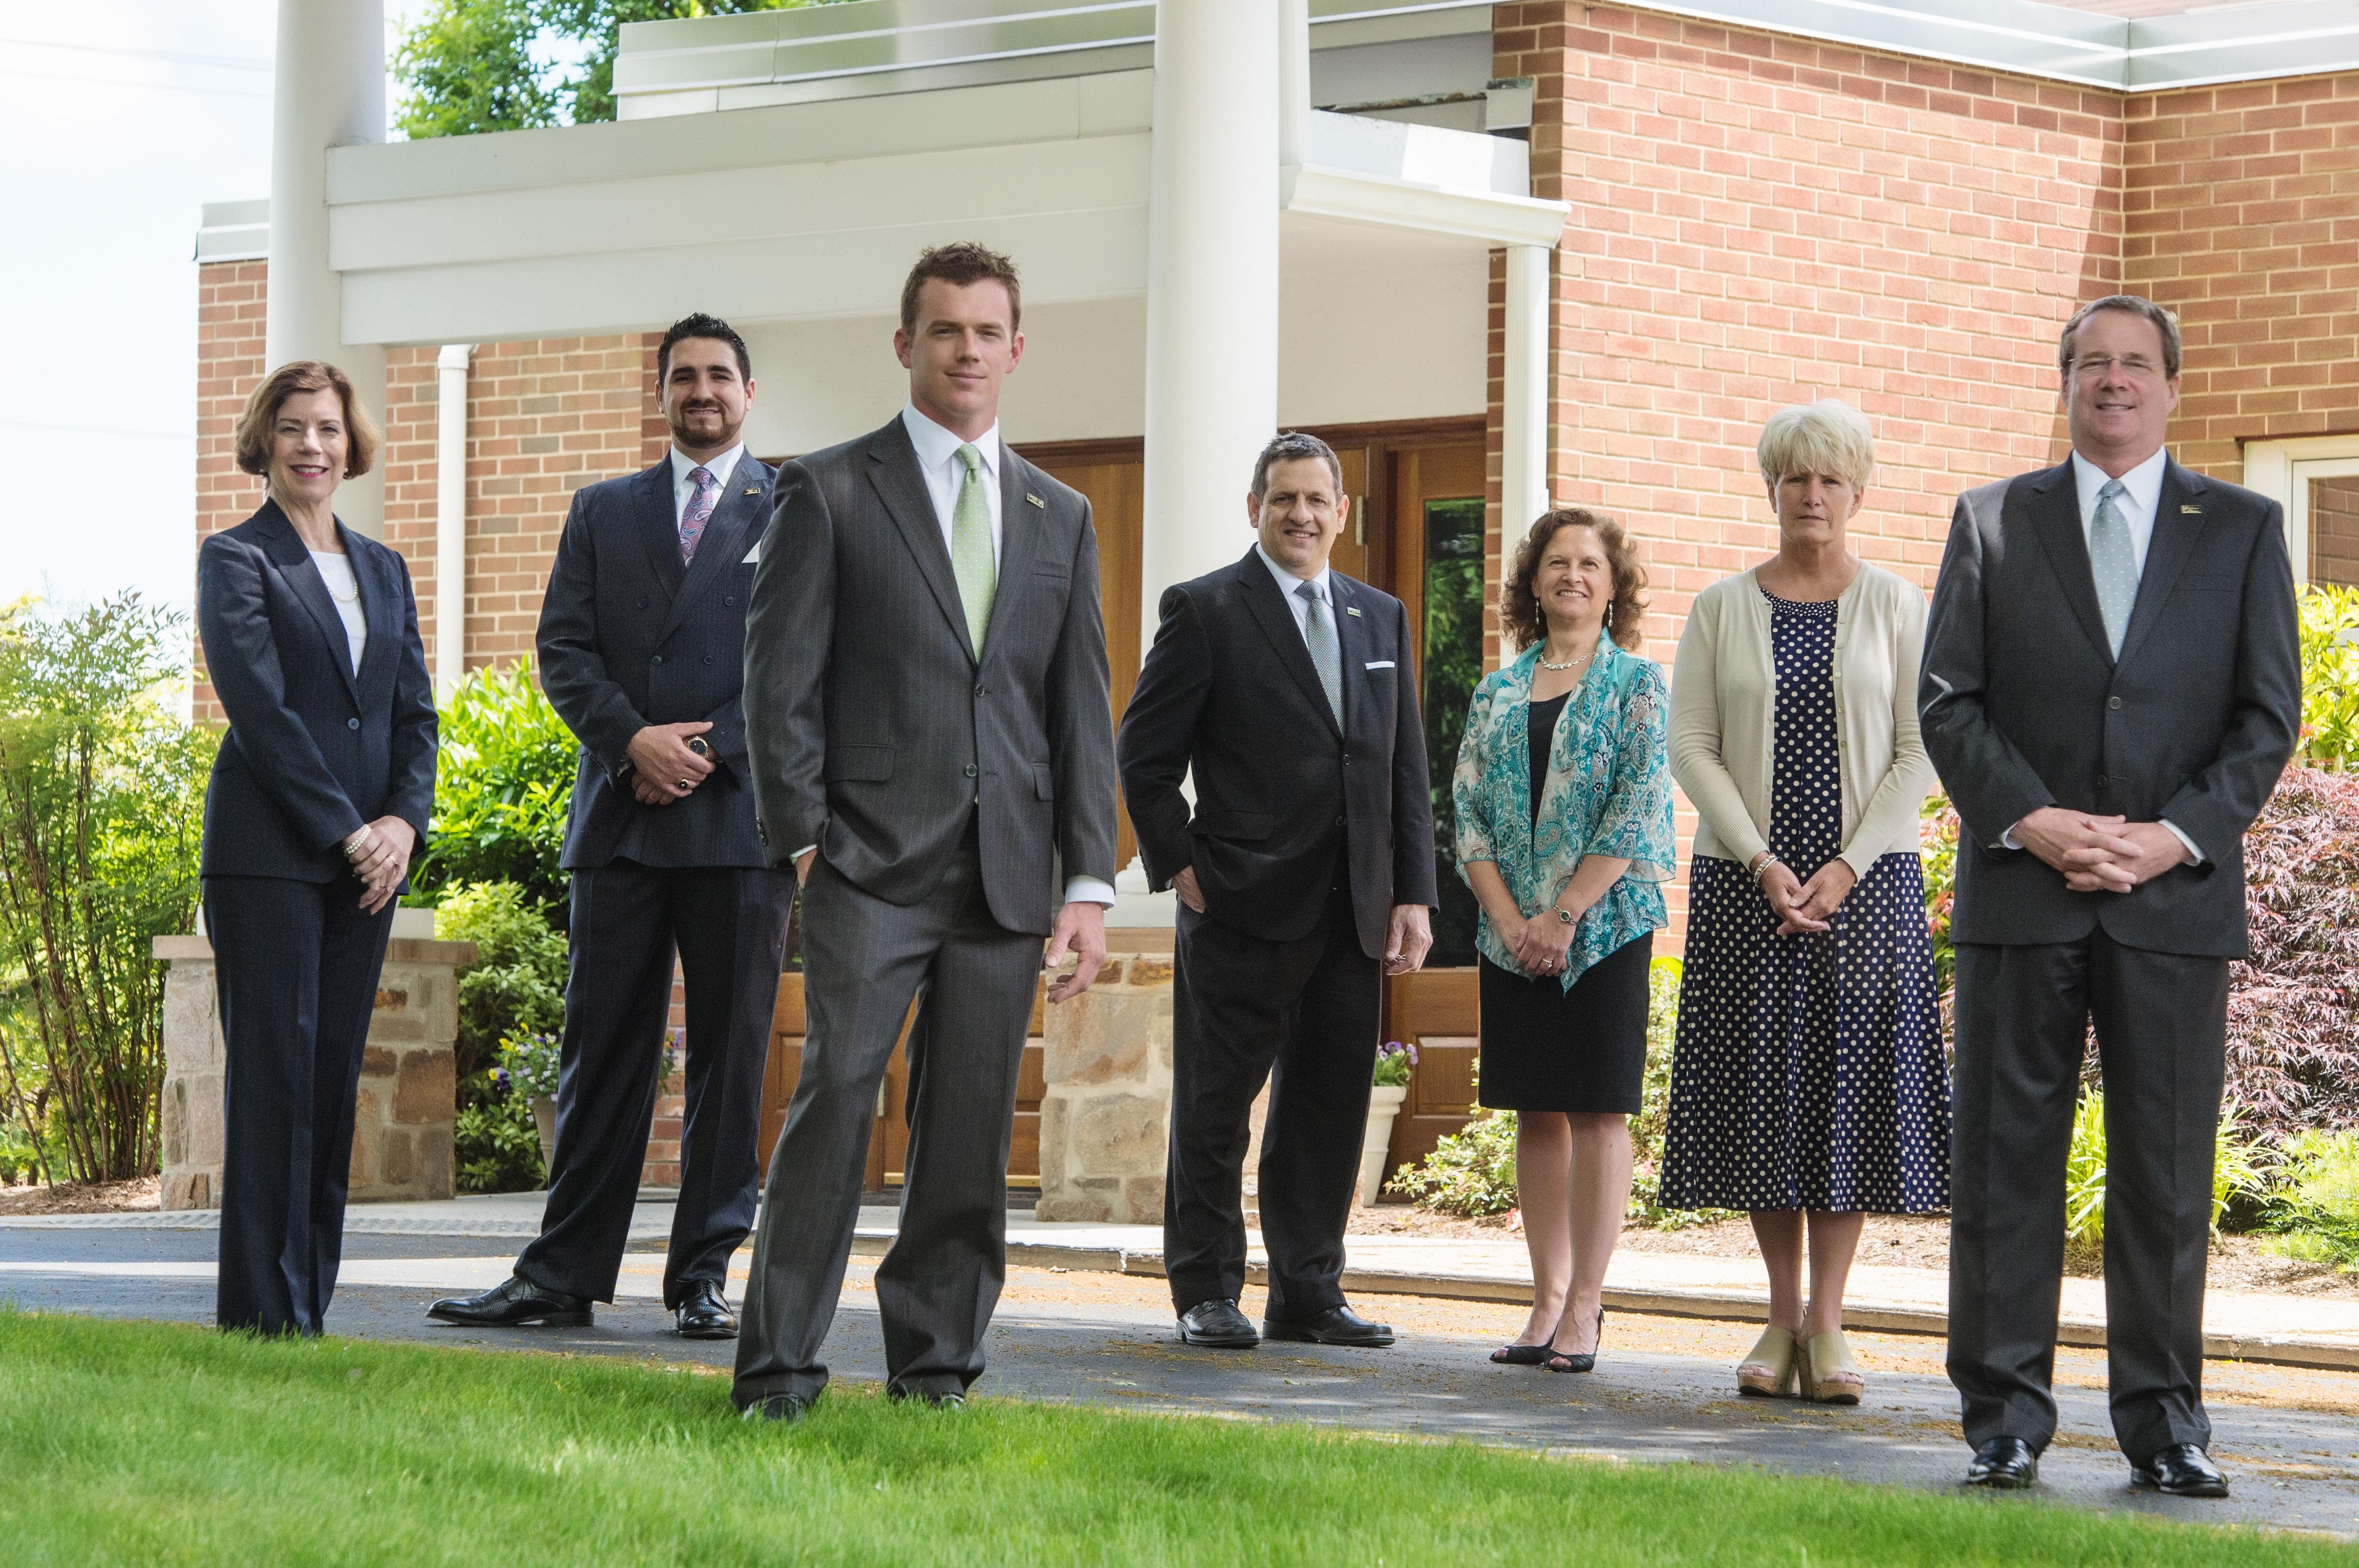 McCrery & Harra Funeral Homes and Crematory